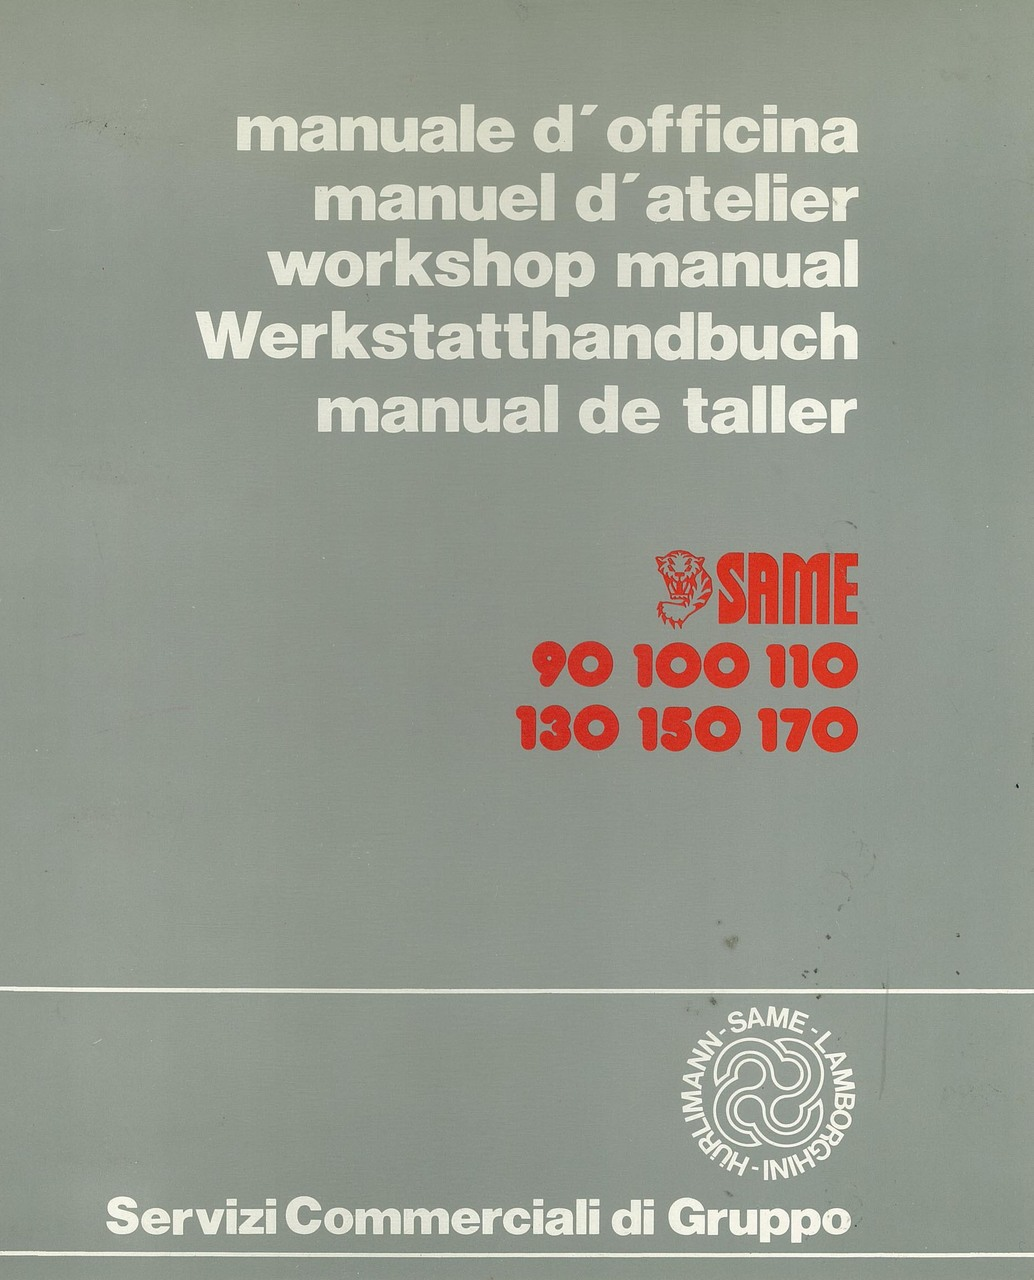 LASER 90-100-110-130-150 - GALAXY 170 - Manuale d' officina